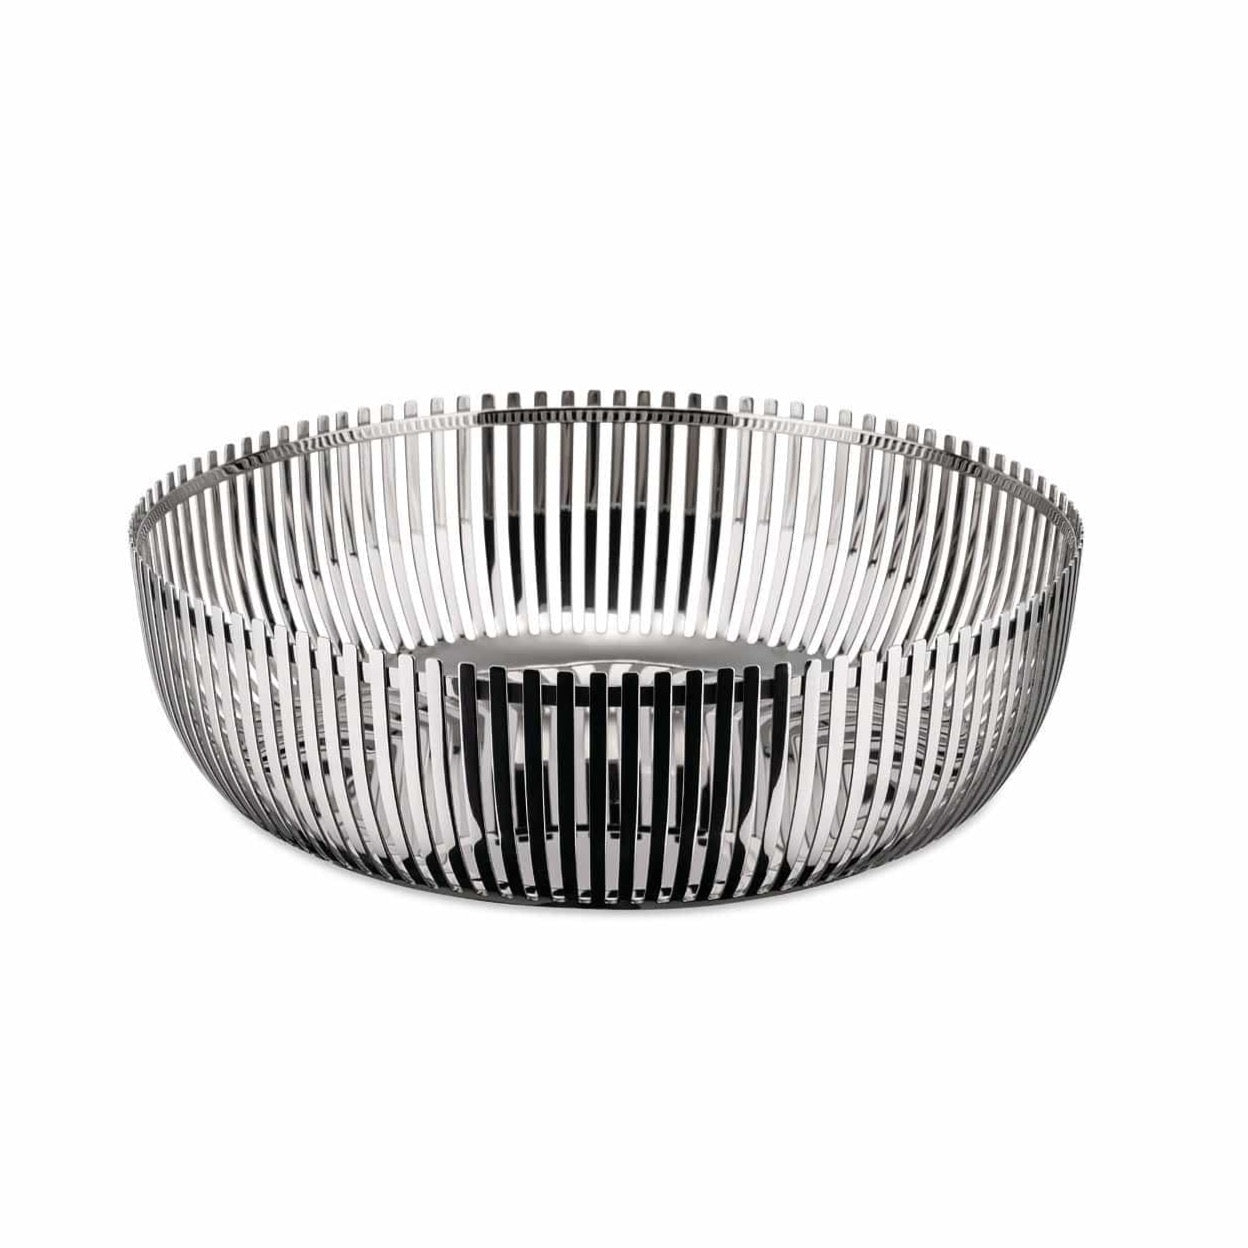 Alessi Alessi Round Basket - Small - Silver PCH02/20